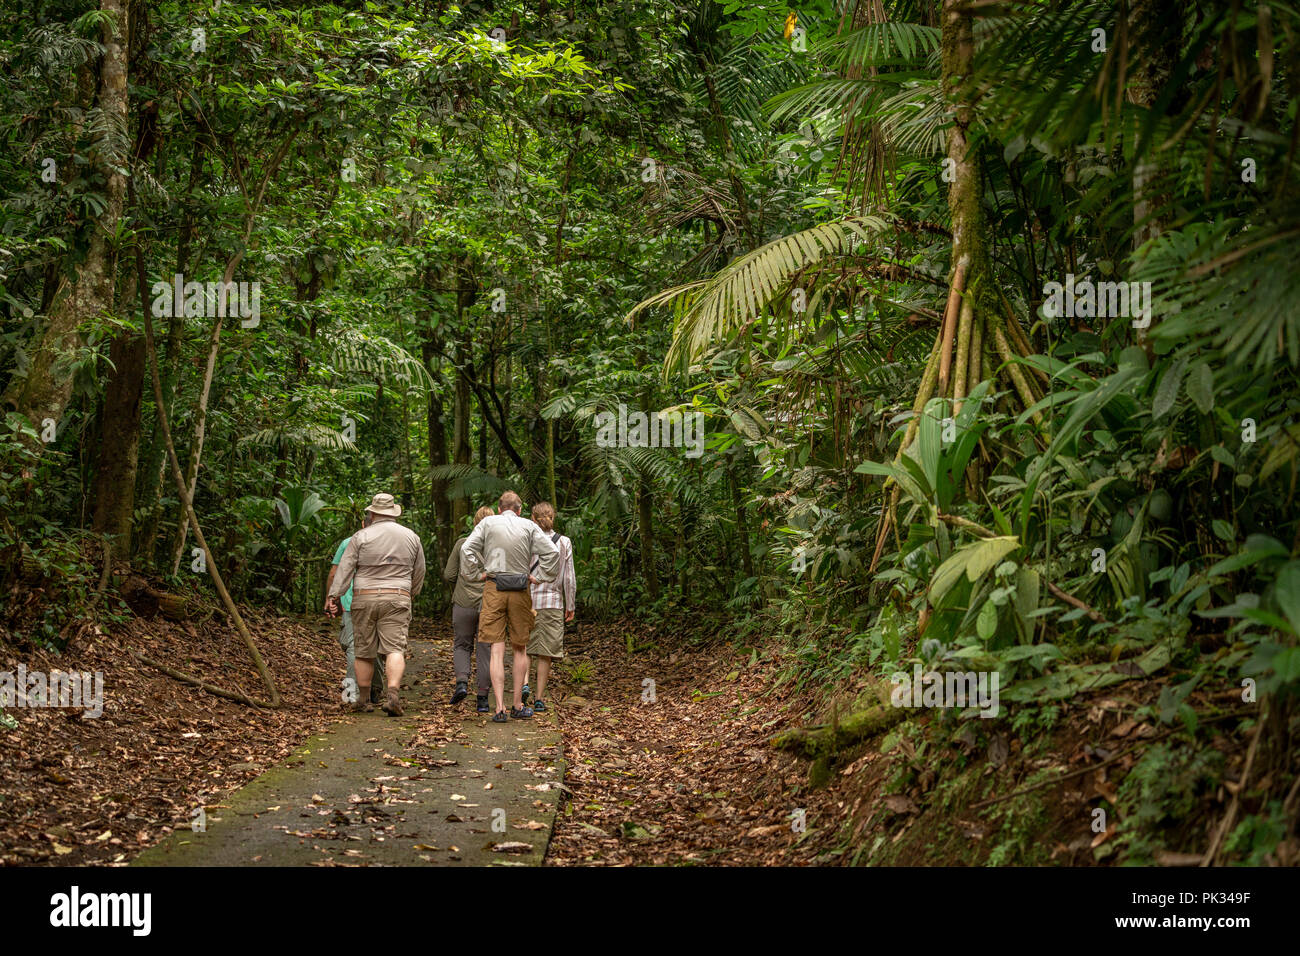 Tourists, Tenorio Volcano National Park, Costa Rica - Stock Image